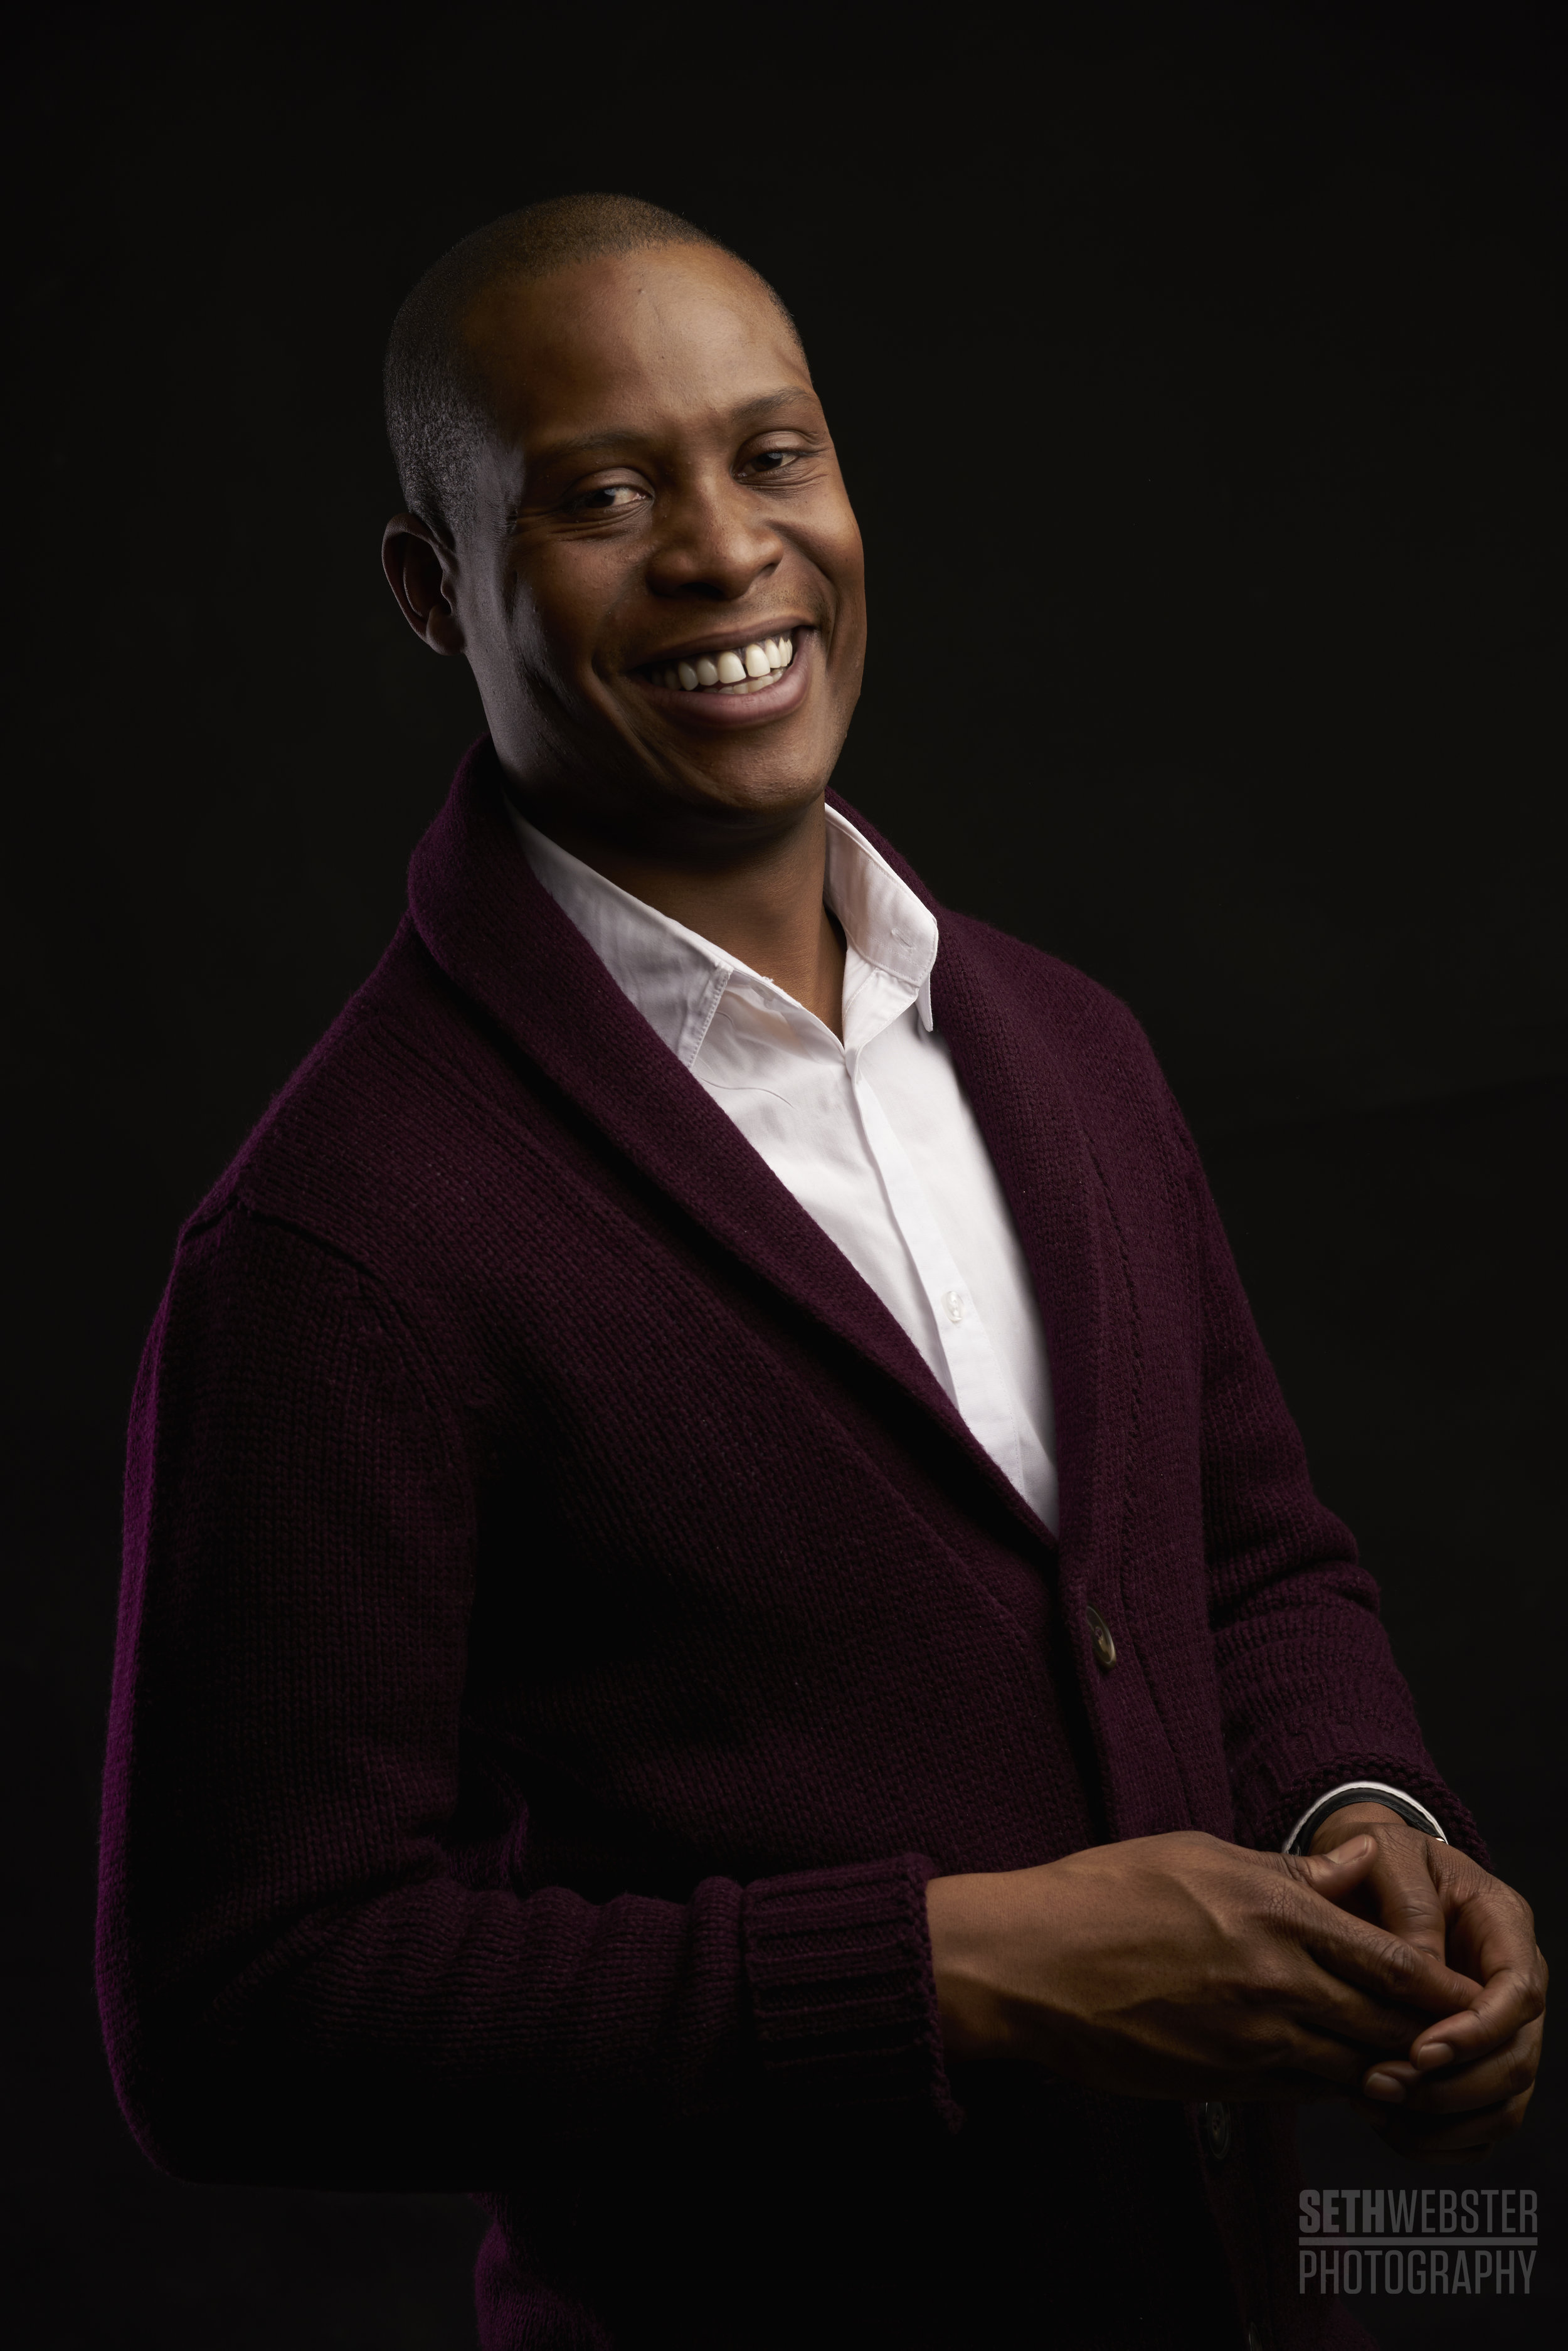 Darnell Jefferson, Newscaster, Portrait